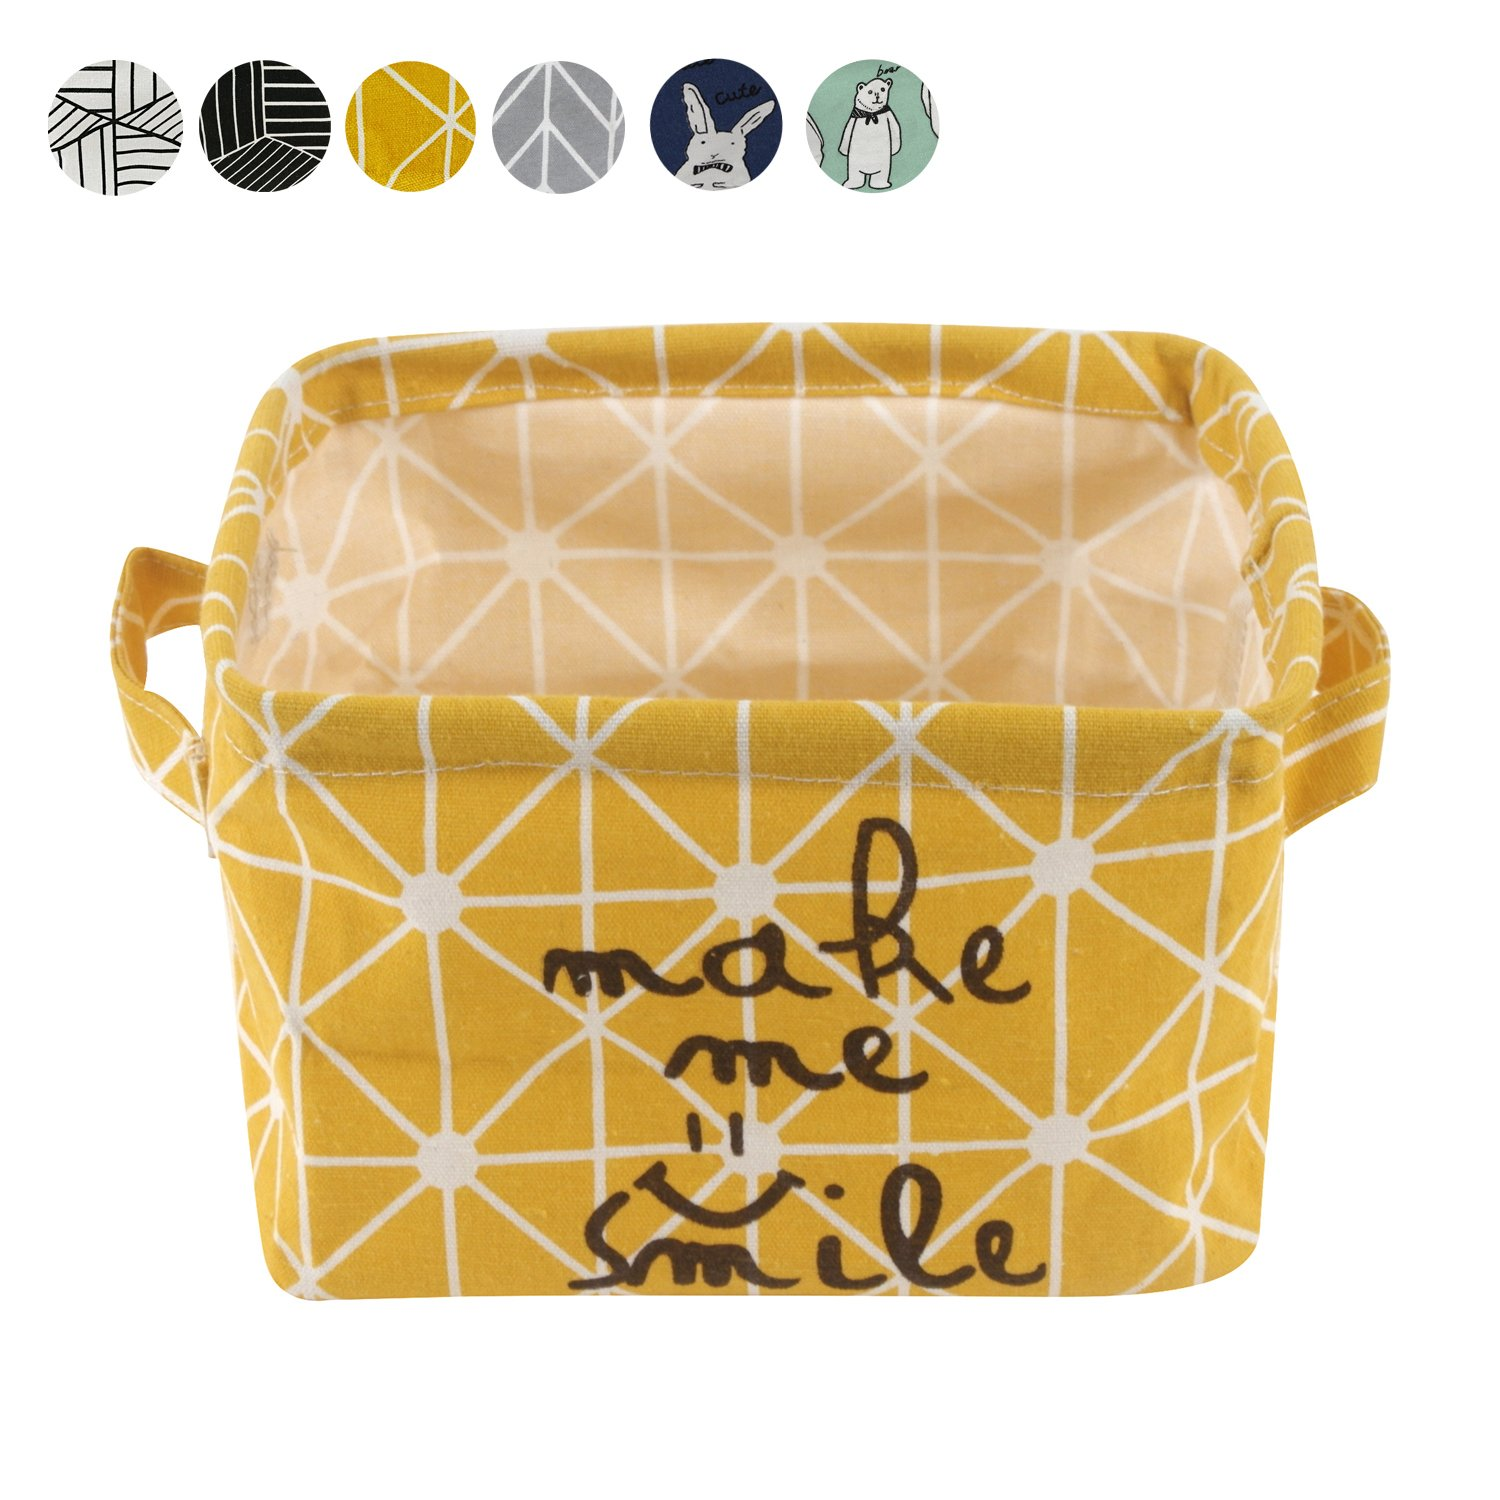 Small Foldable Storage Basket Canvas Fabric Organizer Collapsible and Convenient for Nursery Babies Room 100% Cotton by USATDD (Yellow)